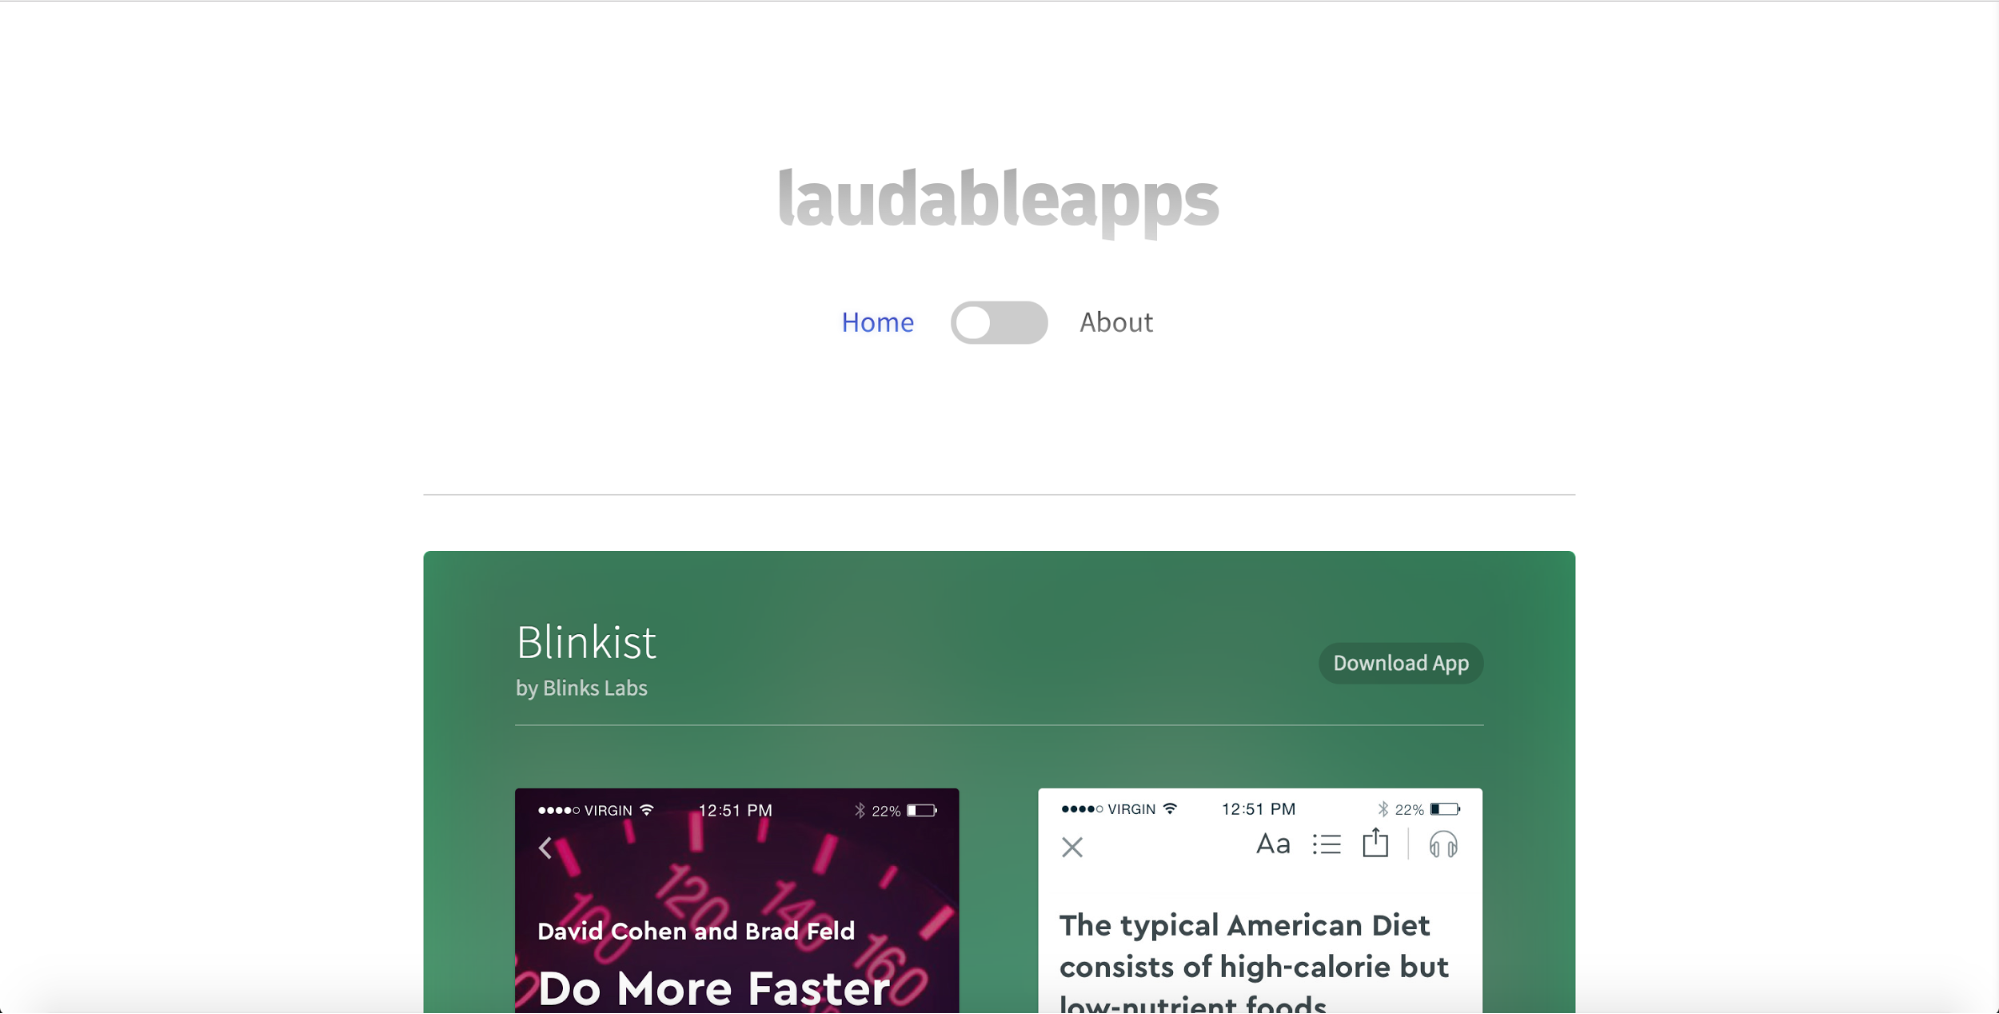 Laudable Apps inspiration homepage